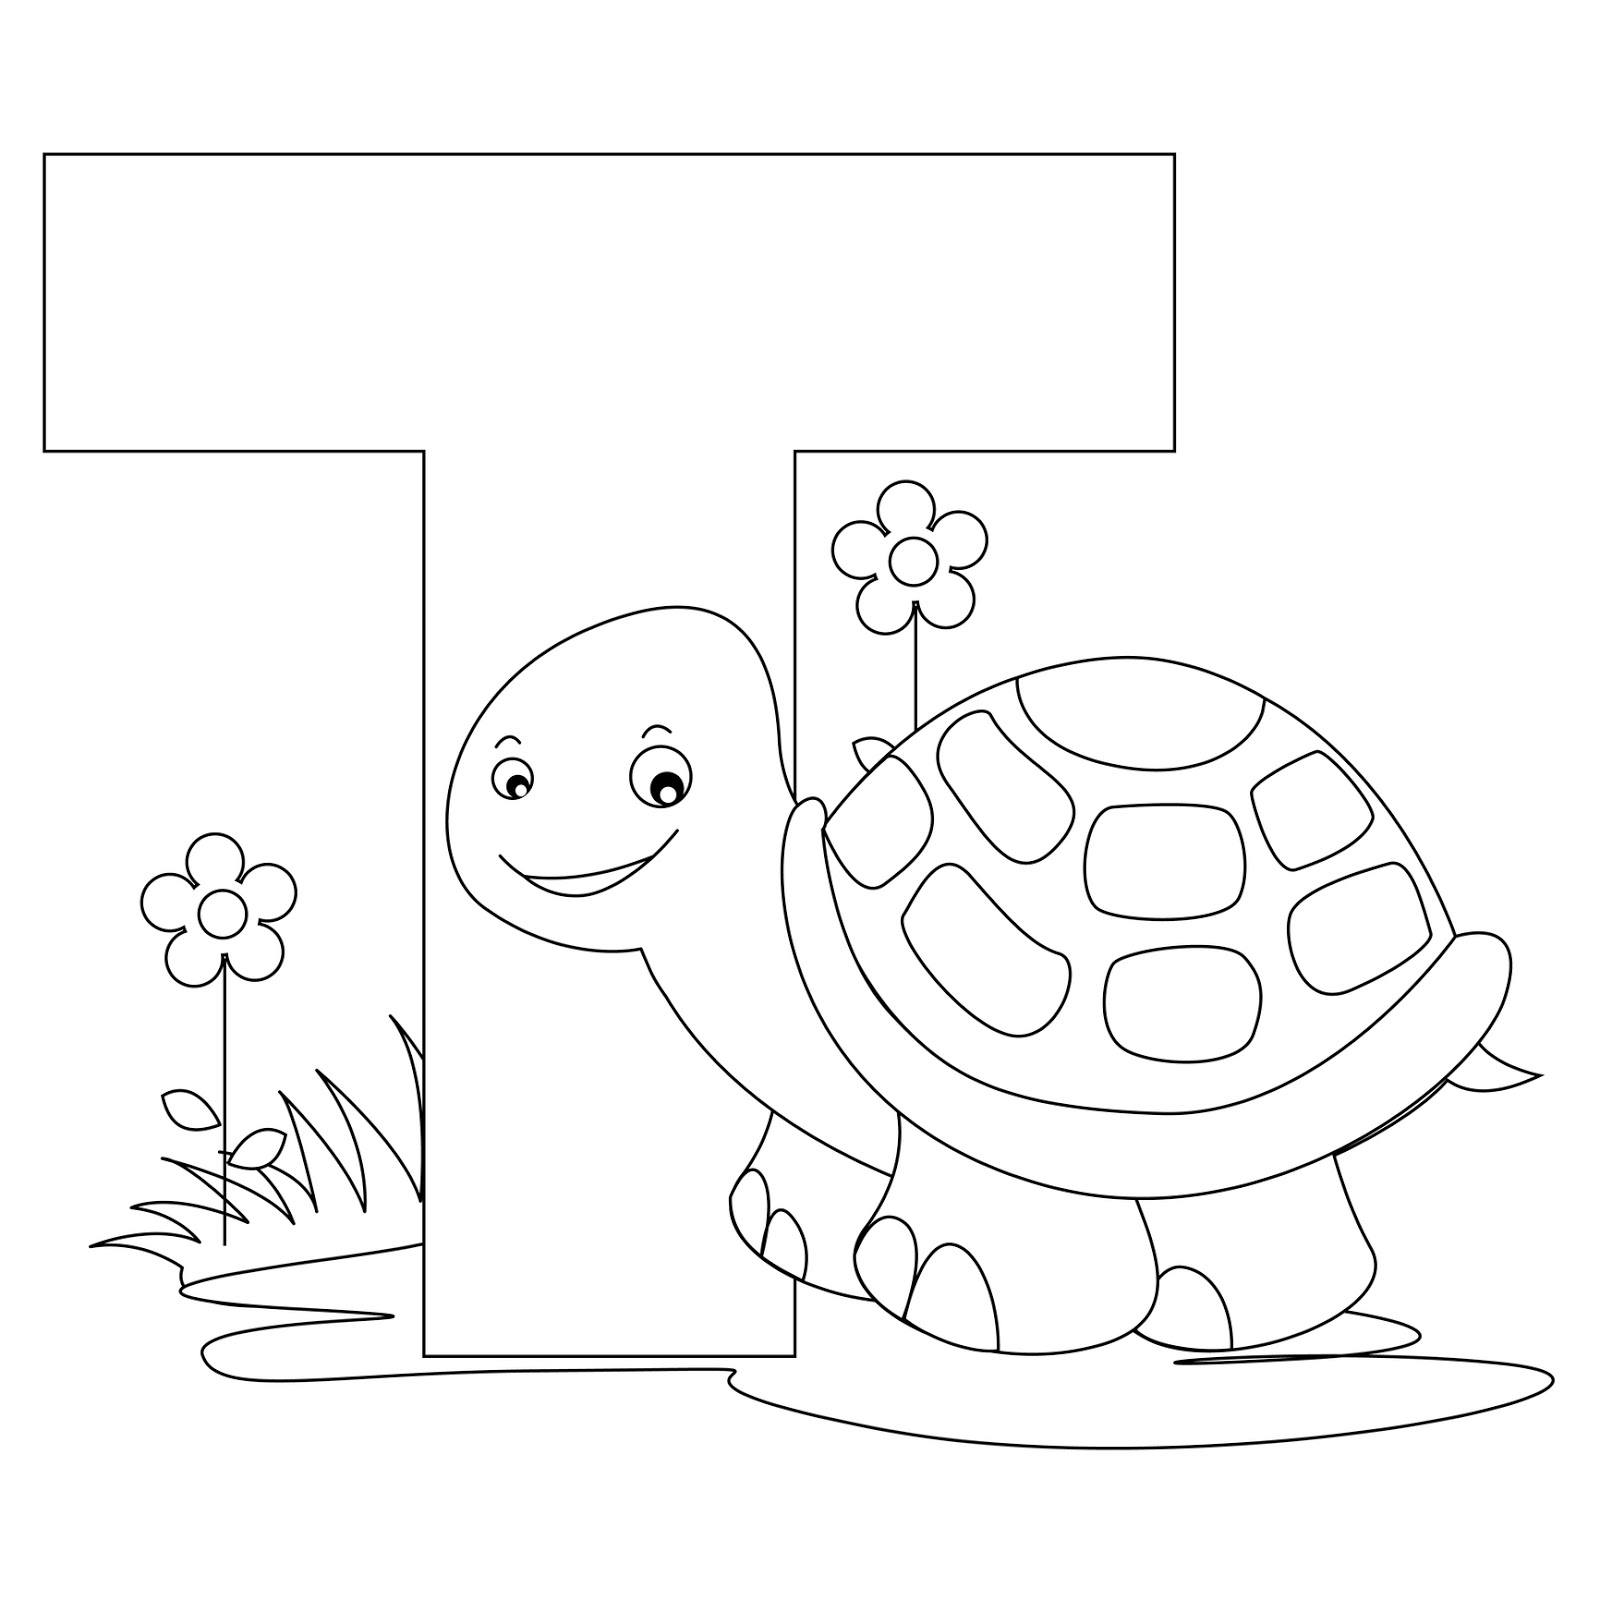 Letter T Coloring Page Coloringnori Coloring Pages For Kids